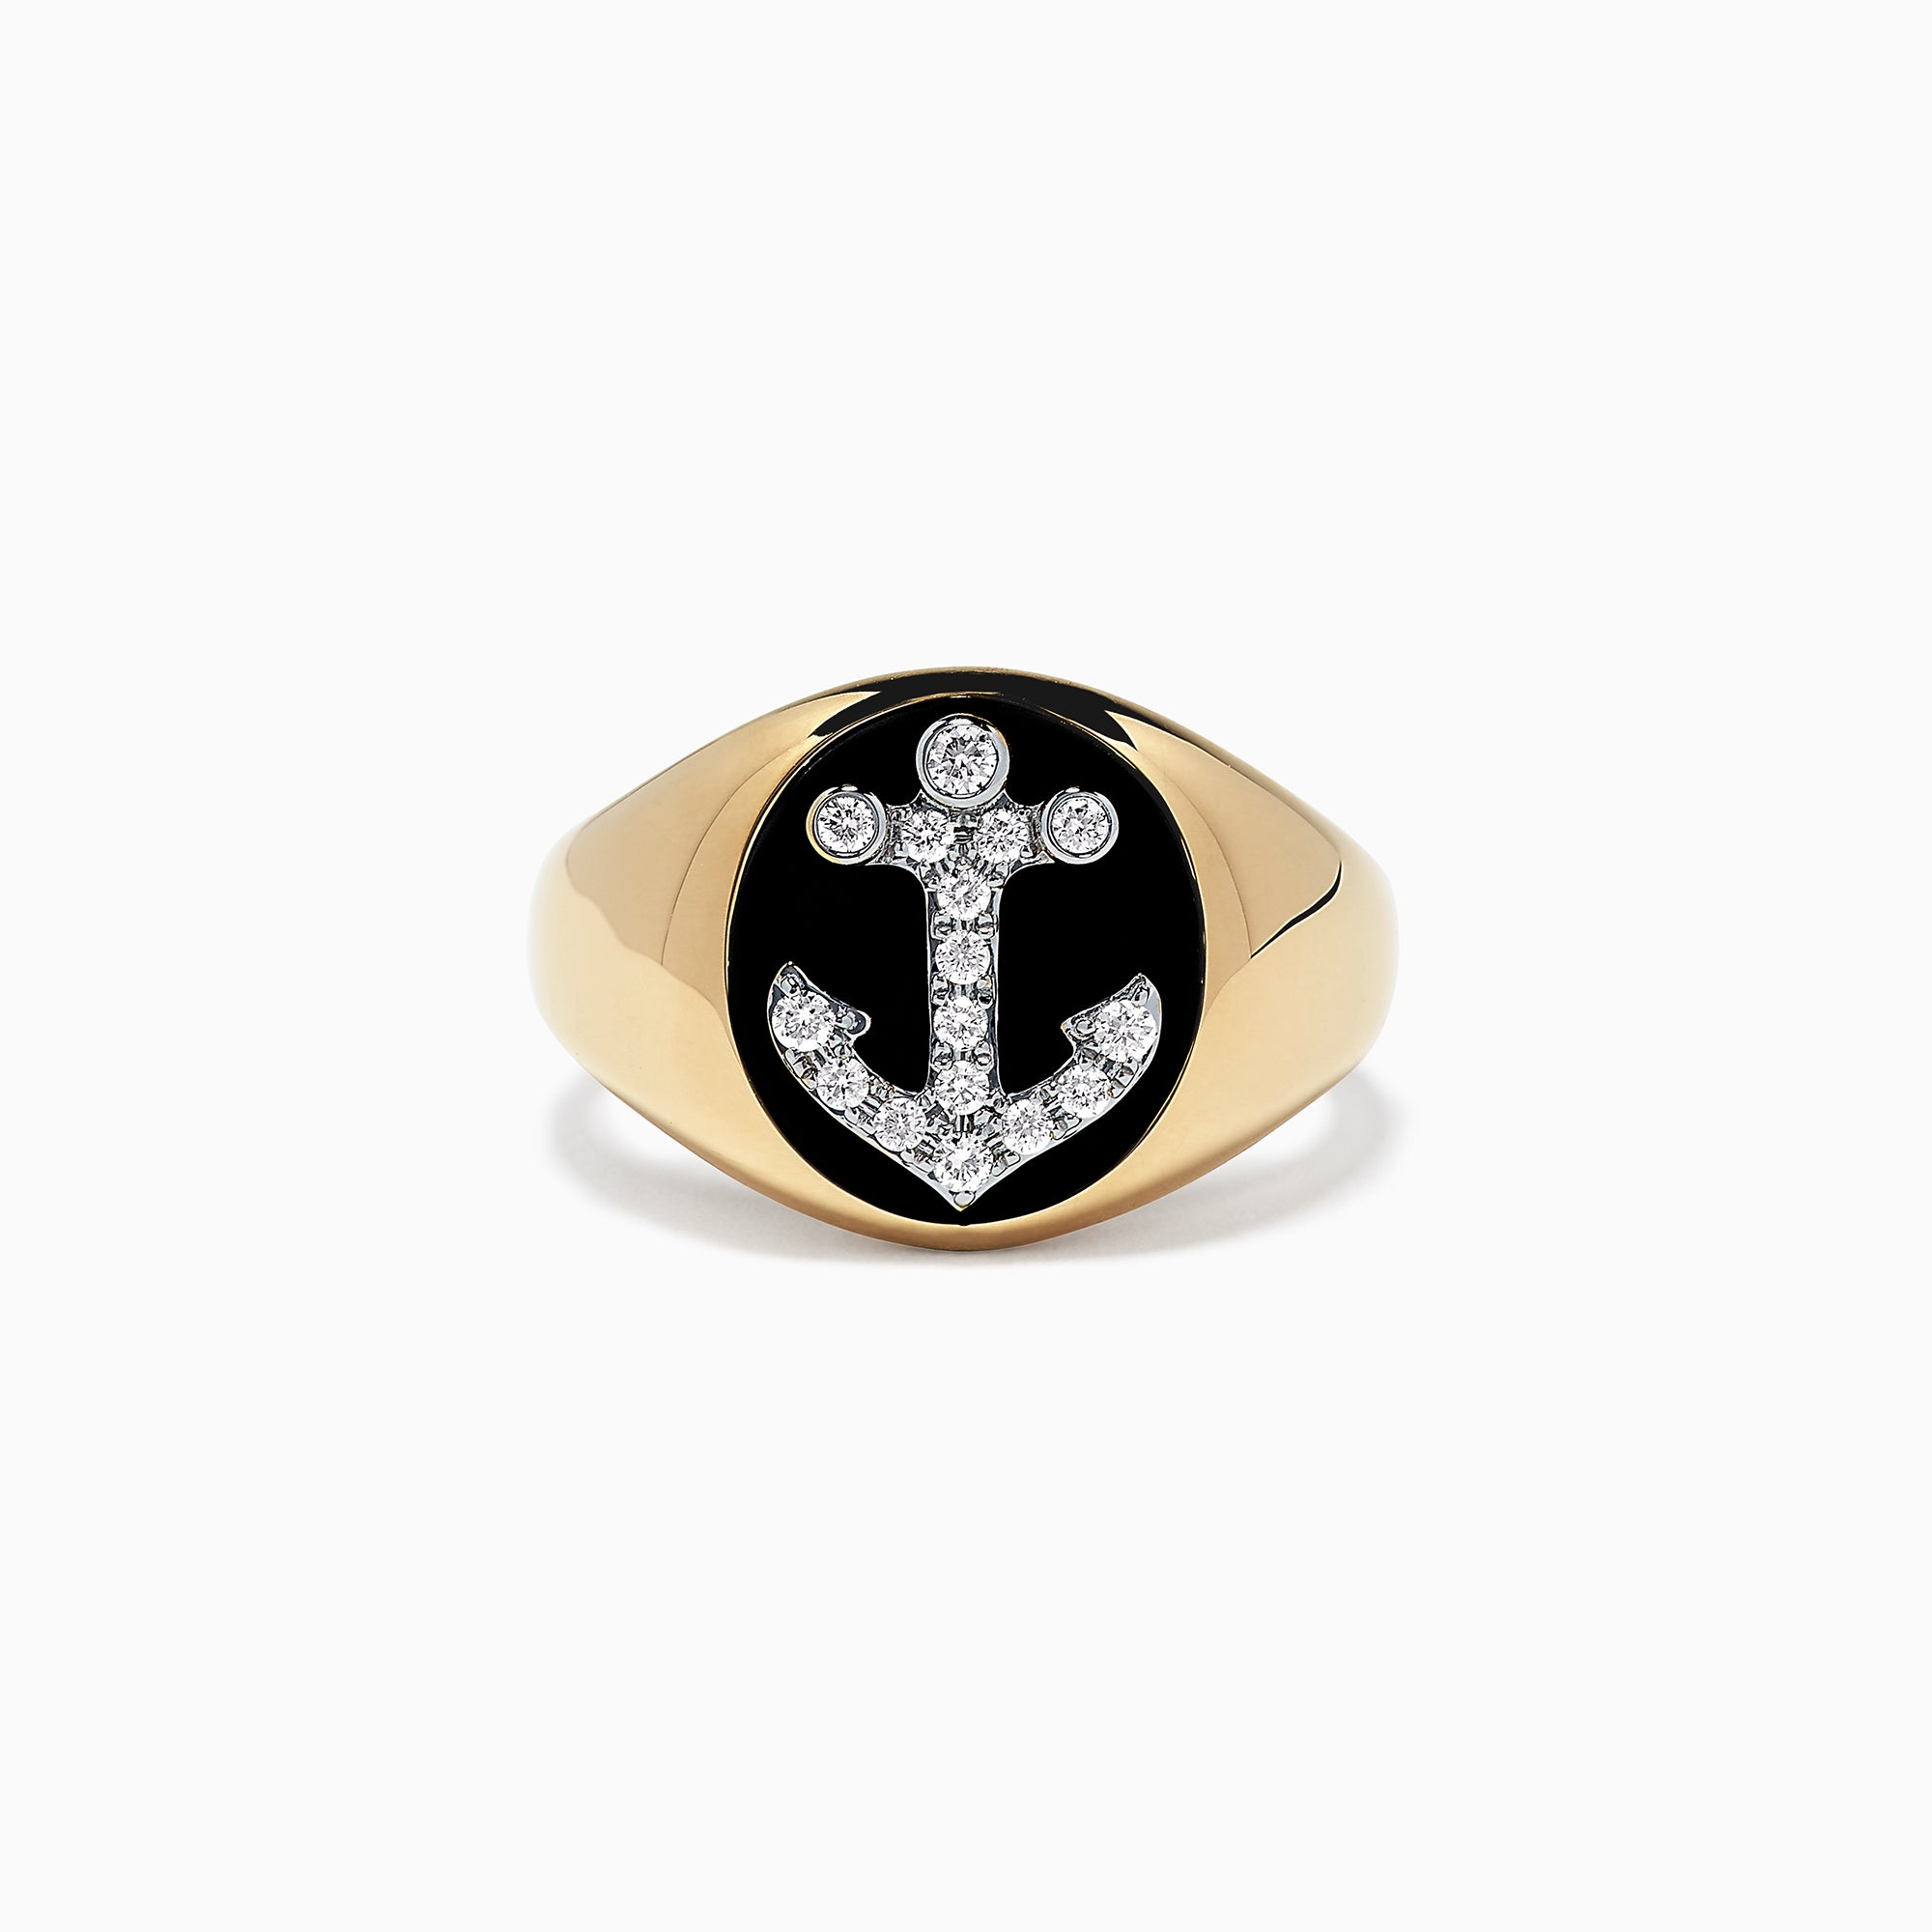 Effy Men's 14K Yellow Gold Diamond Anchor Signet Ring, 0.31 TCW